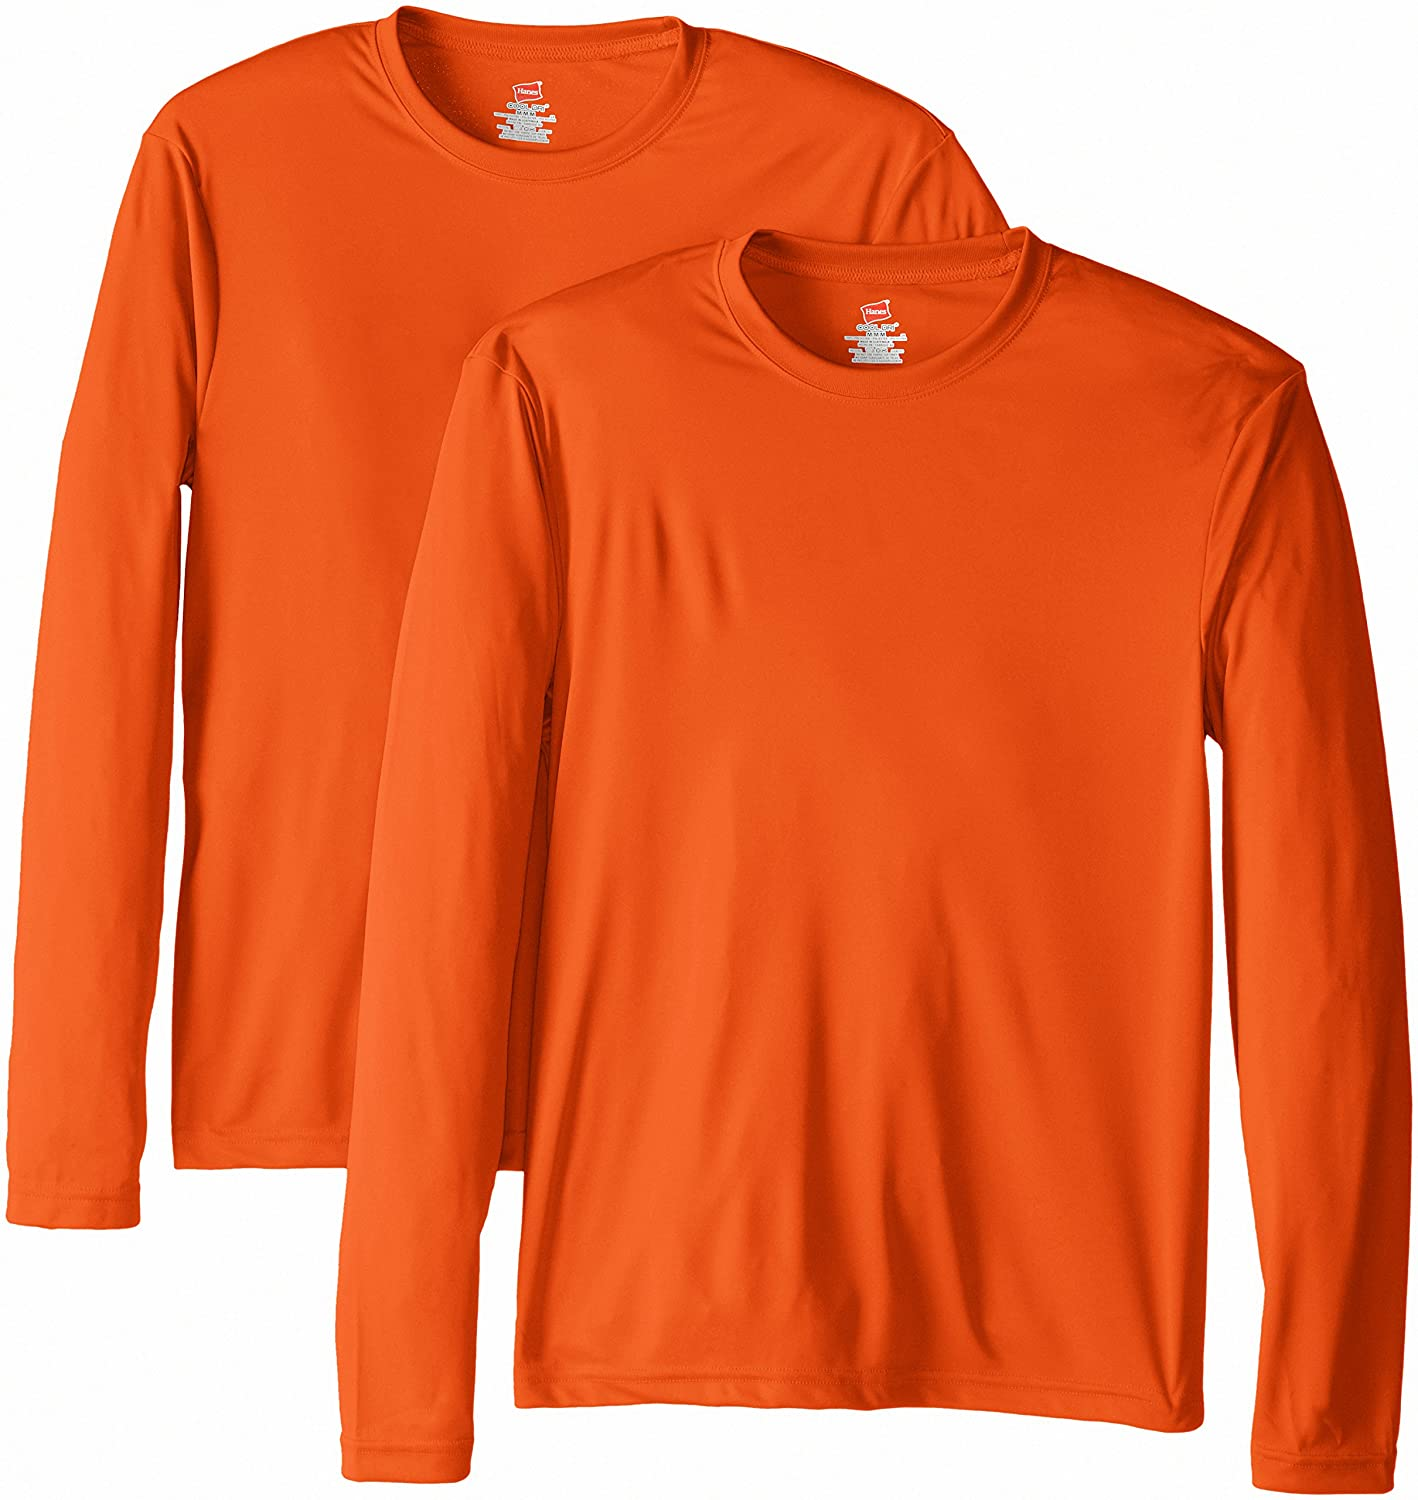 Hanes Men's Long Sleeve Cool Dri T-Shirt UPF 50+ (Pack of 2) O482Y